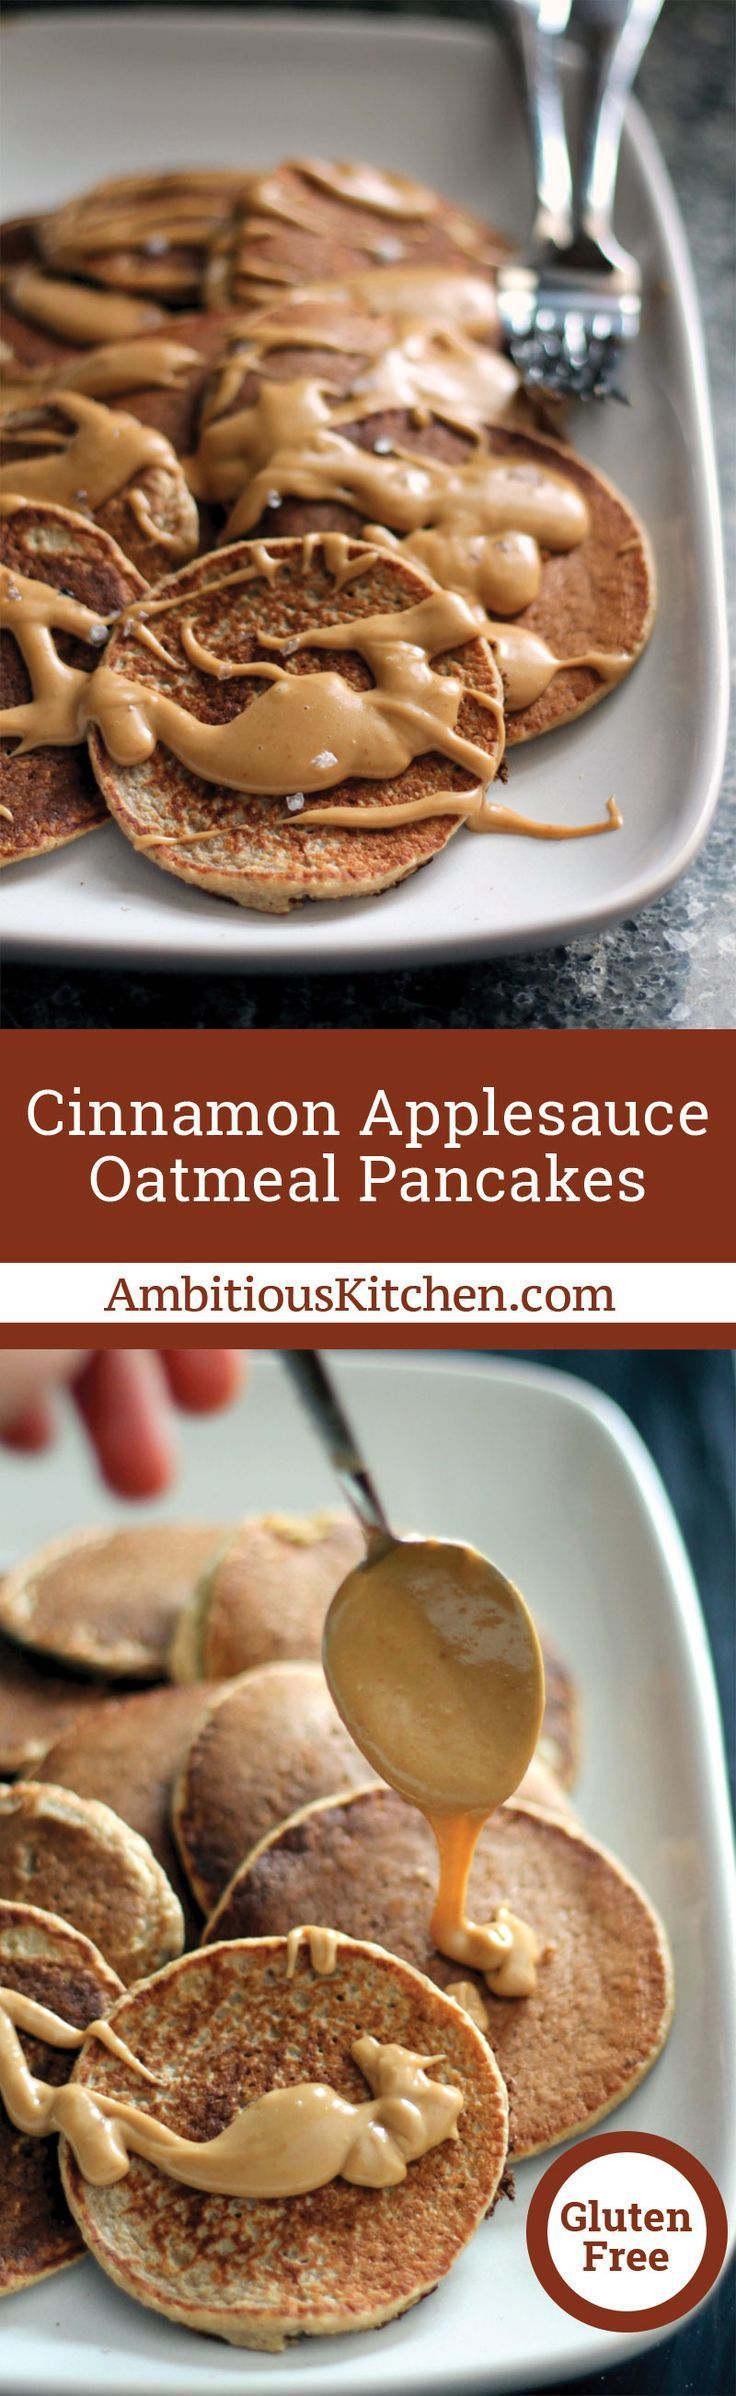 Quick and easy gluten free oatmeal pancakes made in the blender! These healthy pancakes are topped with the most incredible creamy peanut butter maple syrup and finished with a sprinkle of sea salt.